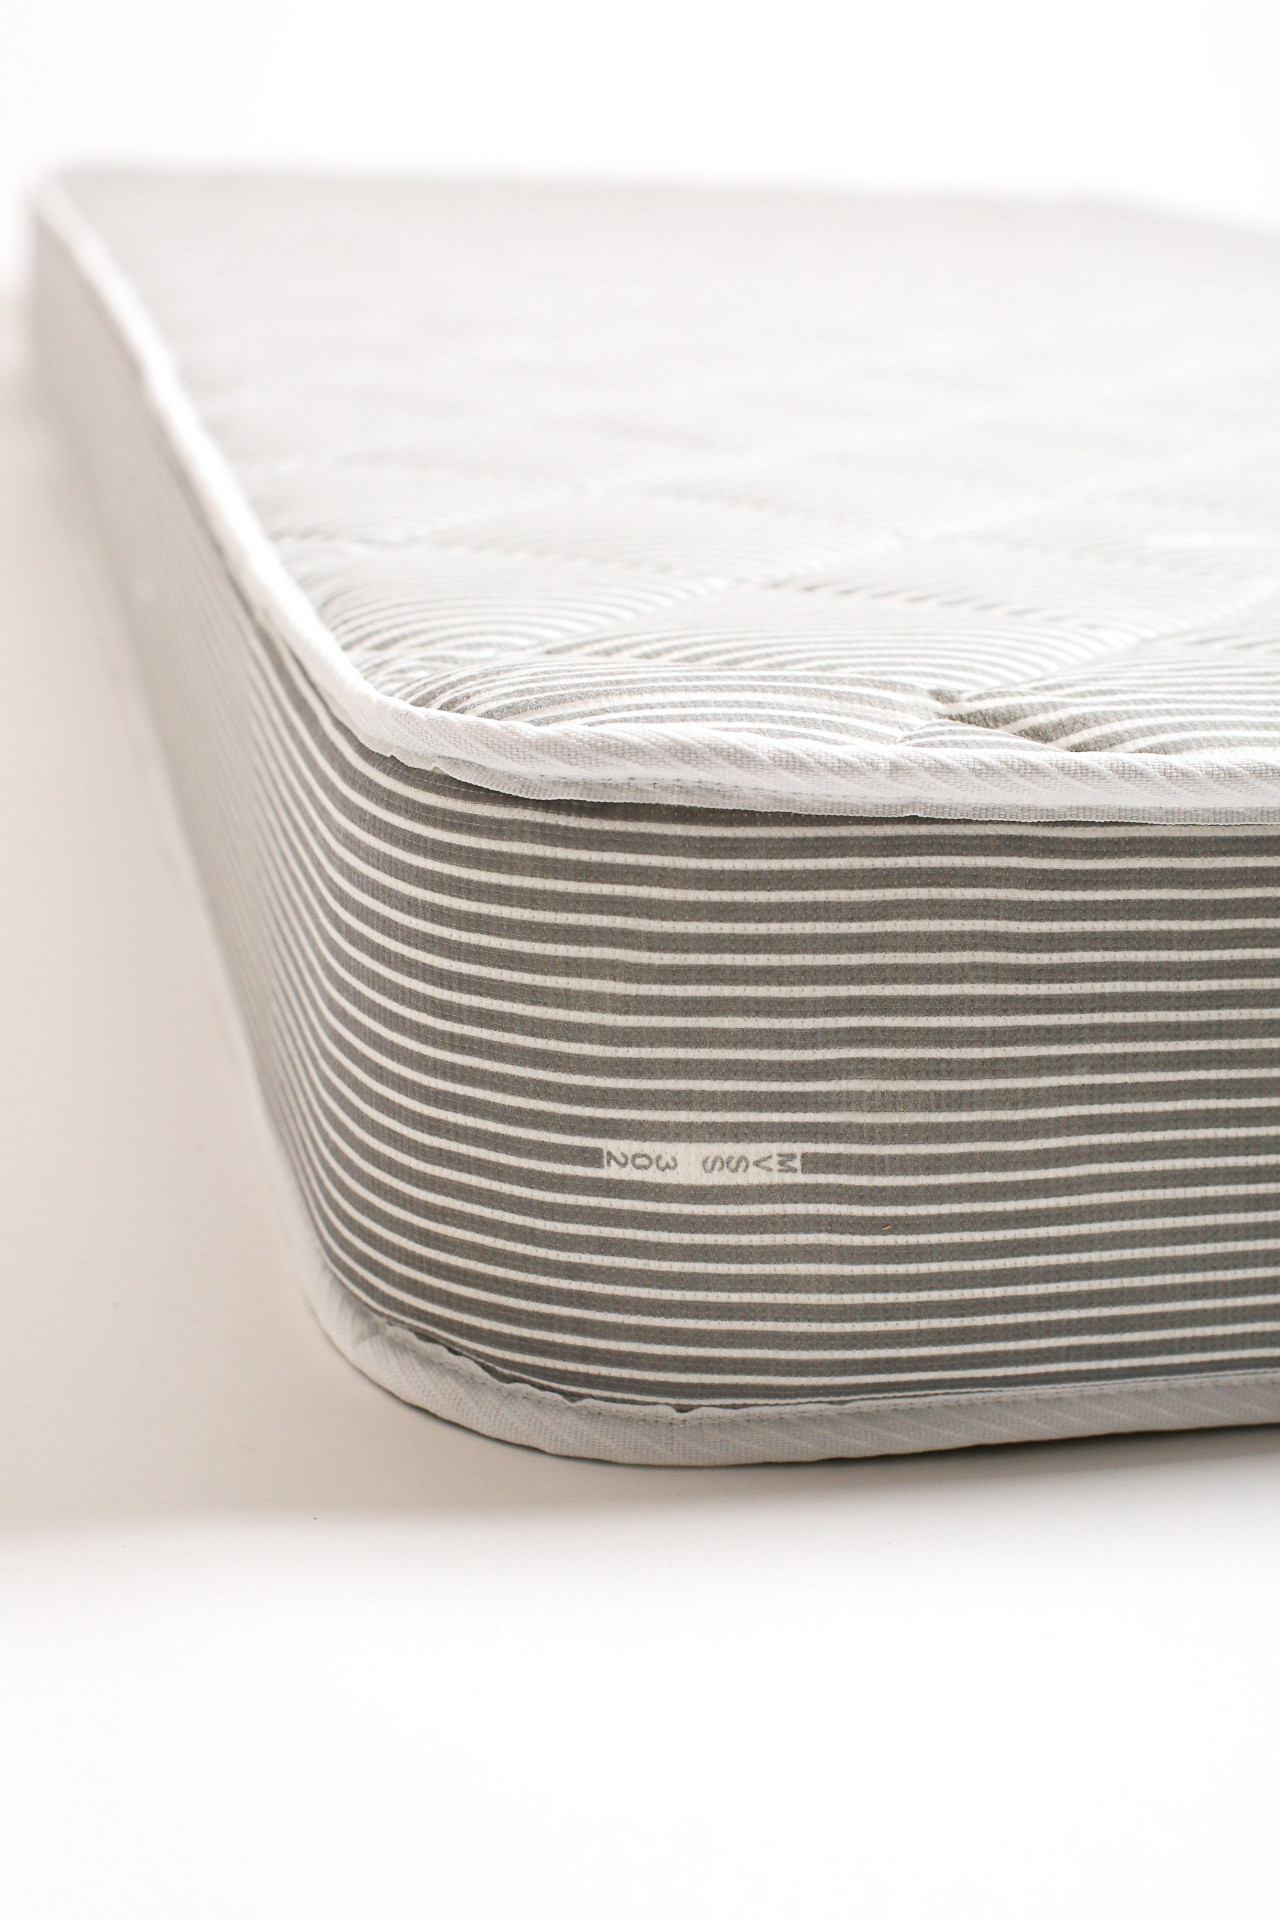 The double-sided, quilted cover adds an extra layer of cushion for a better nights rest.